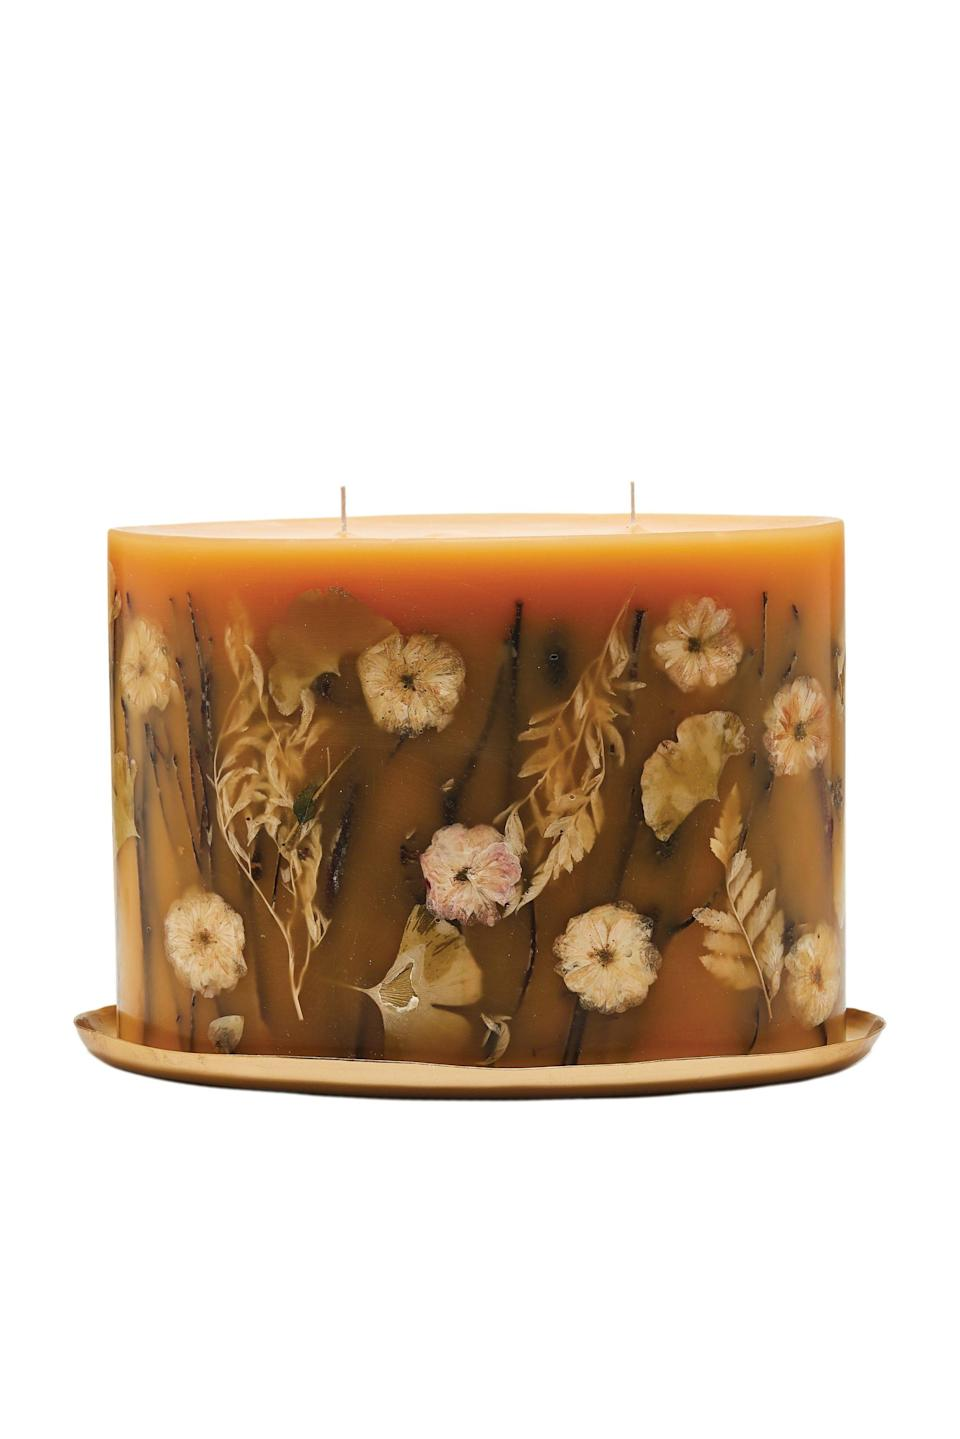 """<p><strong>Rosy Rings</strong></p><p>rosyrings.com</p><p><strong>$220.00</strong></p><p><a href=""""https://rosyrings.com/product/honey-tobacco-limited-botanical-candle-plate-set/"""" rel=""""nofollow noopener"""" target=""""_blank"""" data-ylk=""""slk:Shop Now"""" class=""""link rapid-noclick-resp"""">Shop Now</a></p><p>""""I can't get enough of Rosy Rings' botanical candles—when lit, they look like mini art pieces on my coffee table. Though I want to try every scent, I always go back to the cozy Honey Tobacco.""""—<em>Julie Kosin, senior culture editor</em></p>"""